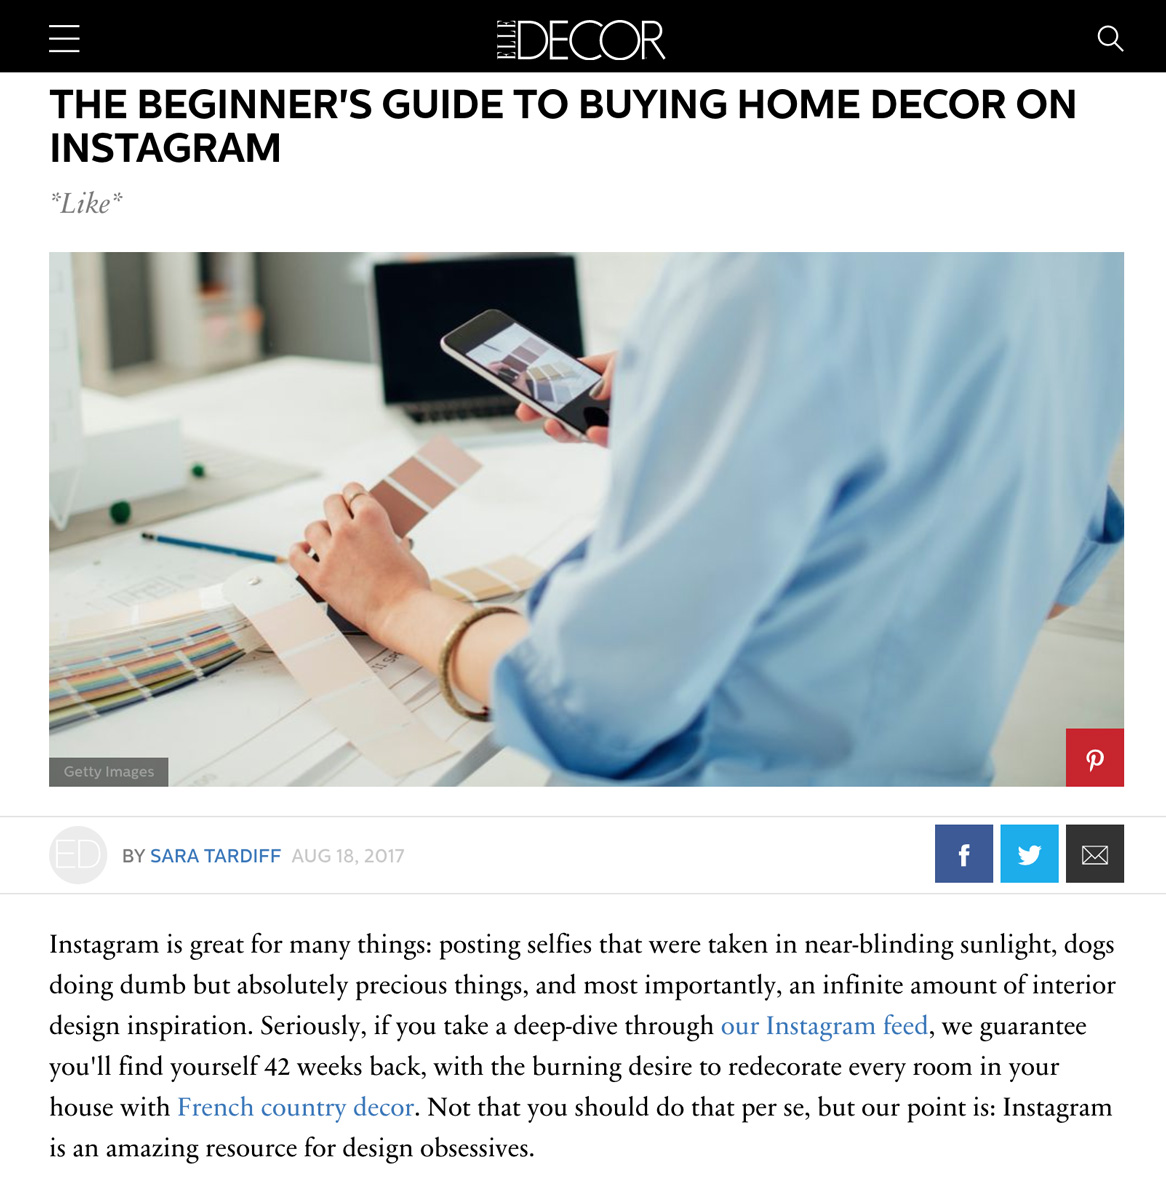 Guide to Buying Home Decor on Instagram